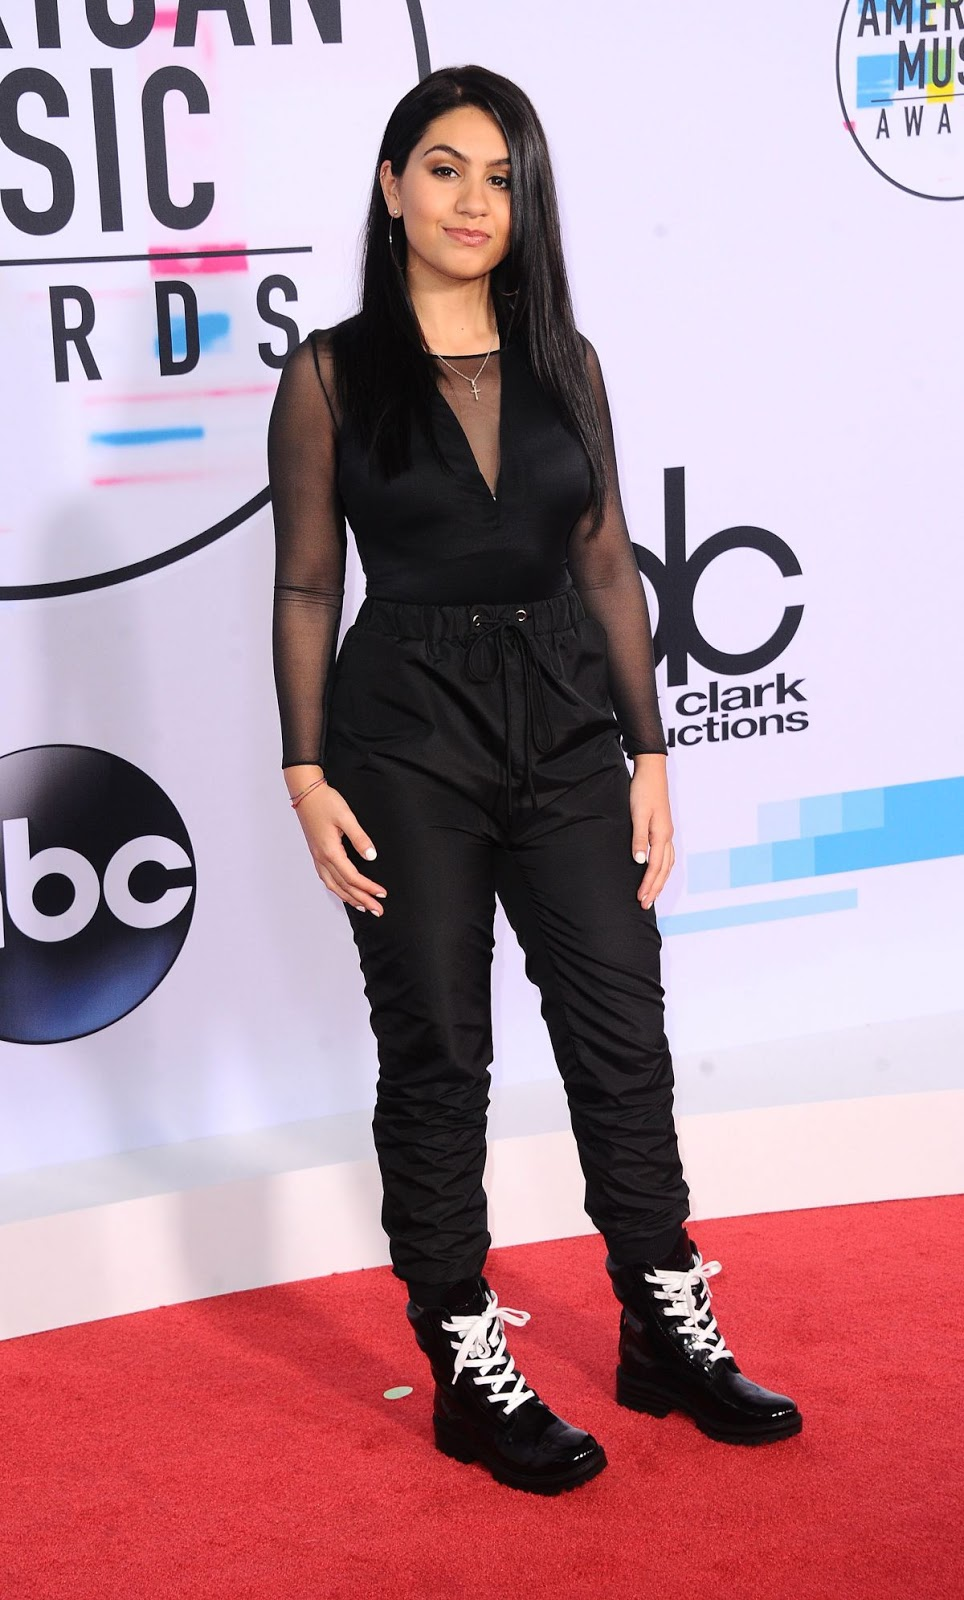 Alessia Cara at American Music Awards 2017 at Microsoft Theater in Los Angeles